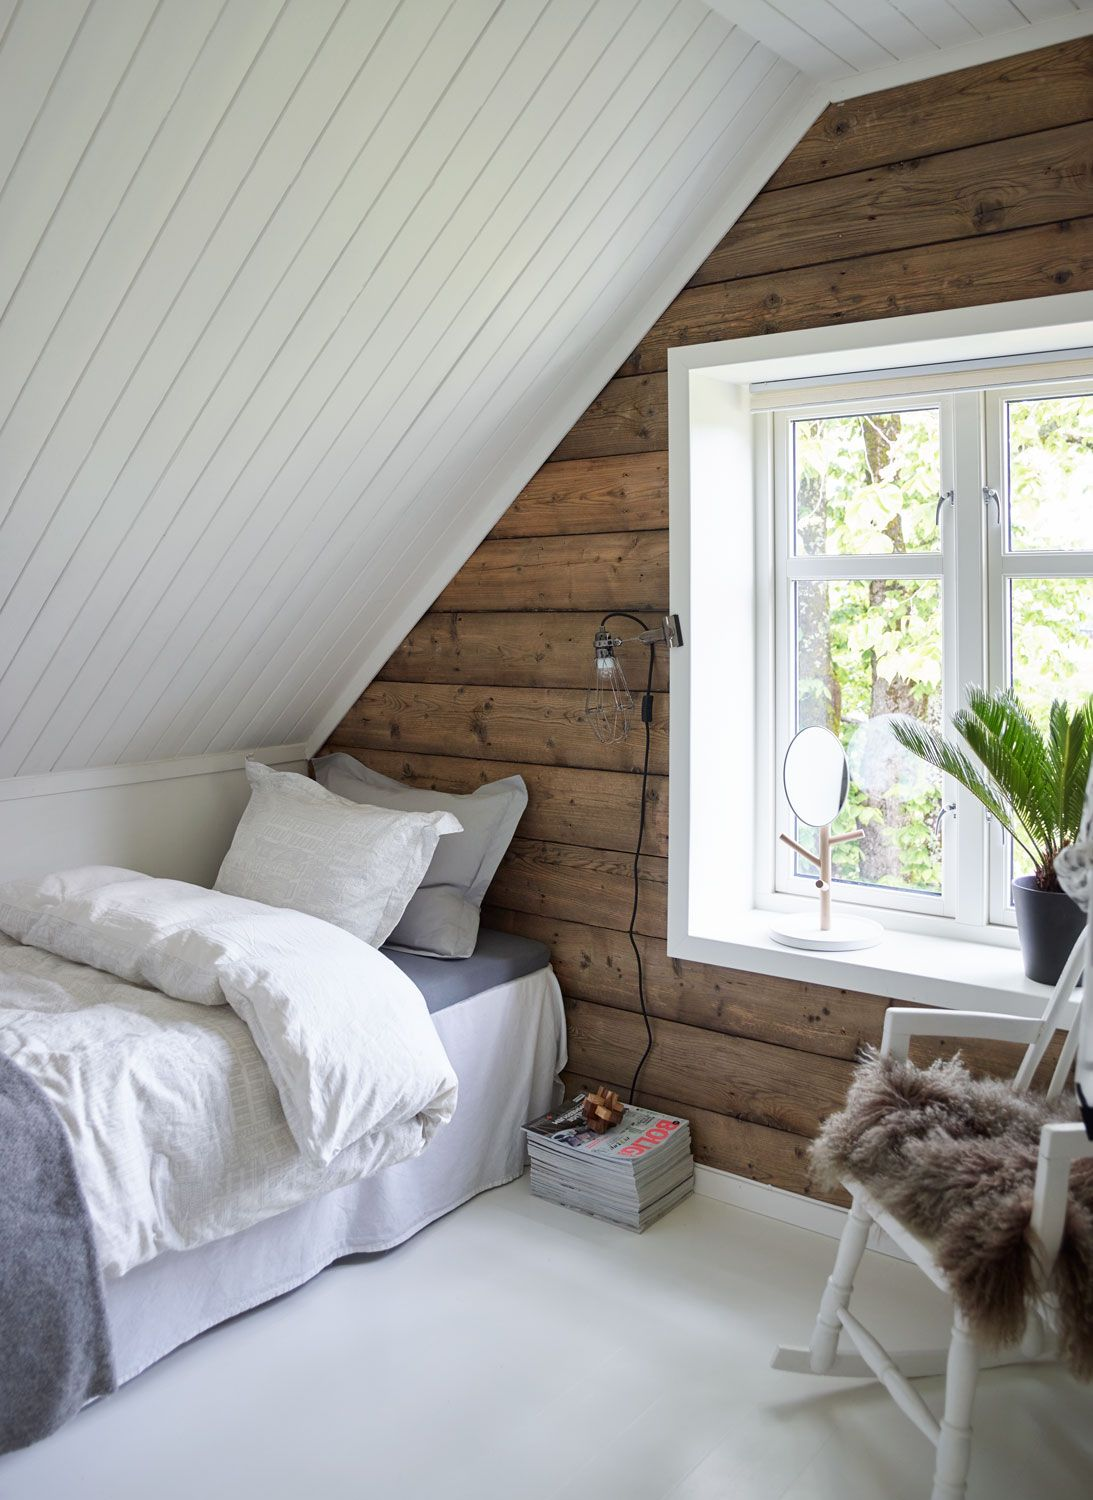 Attic bedroom design and d cor tips small attic bedrooms for Small bedroom wall pictures